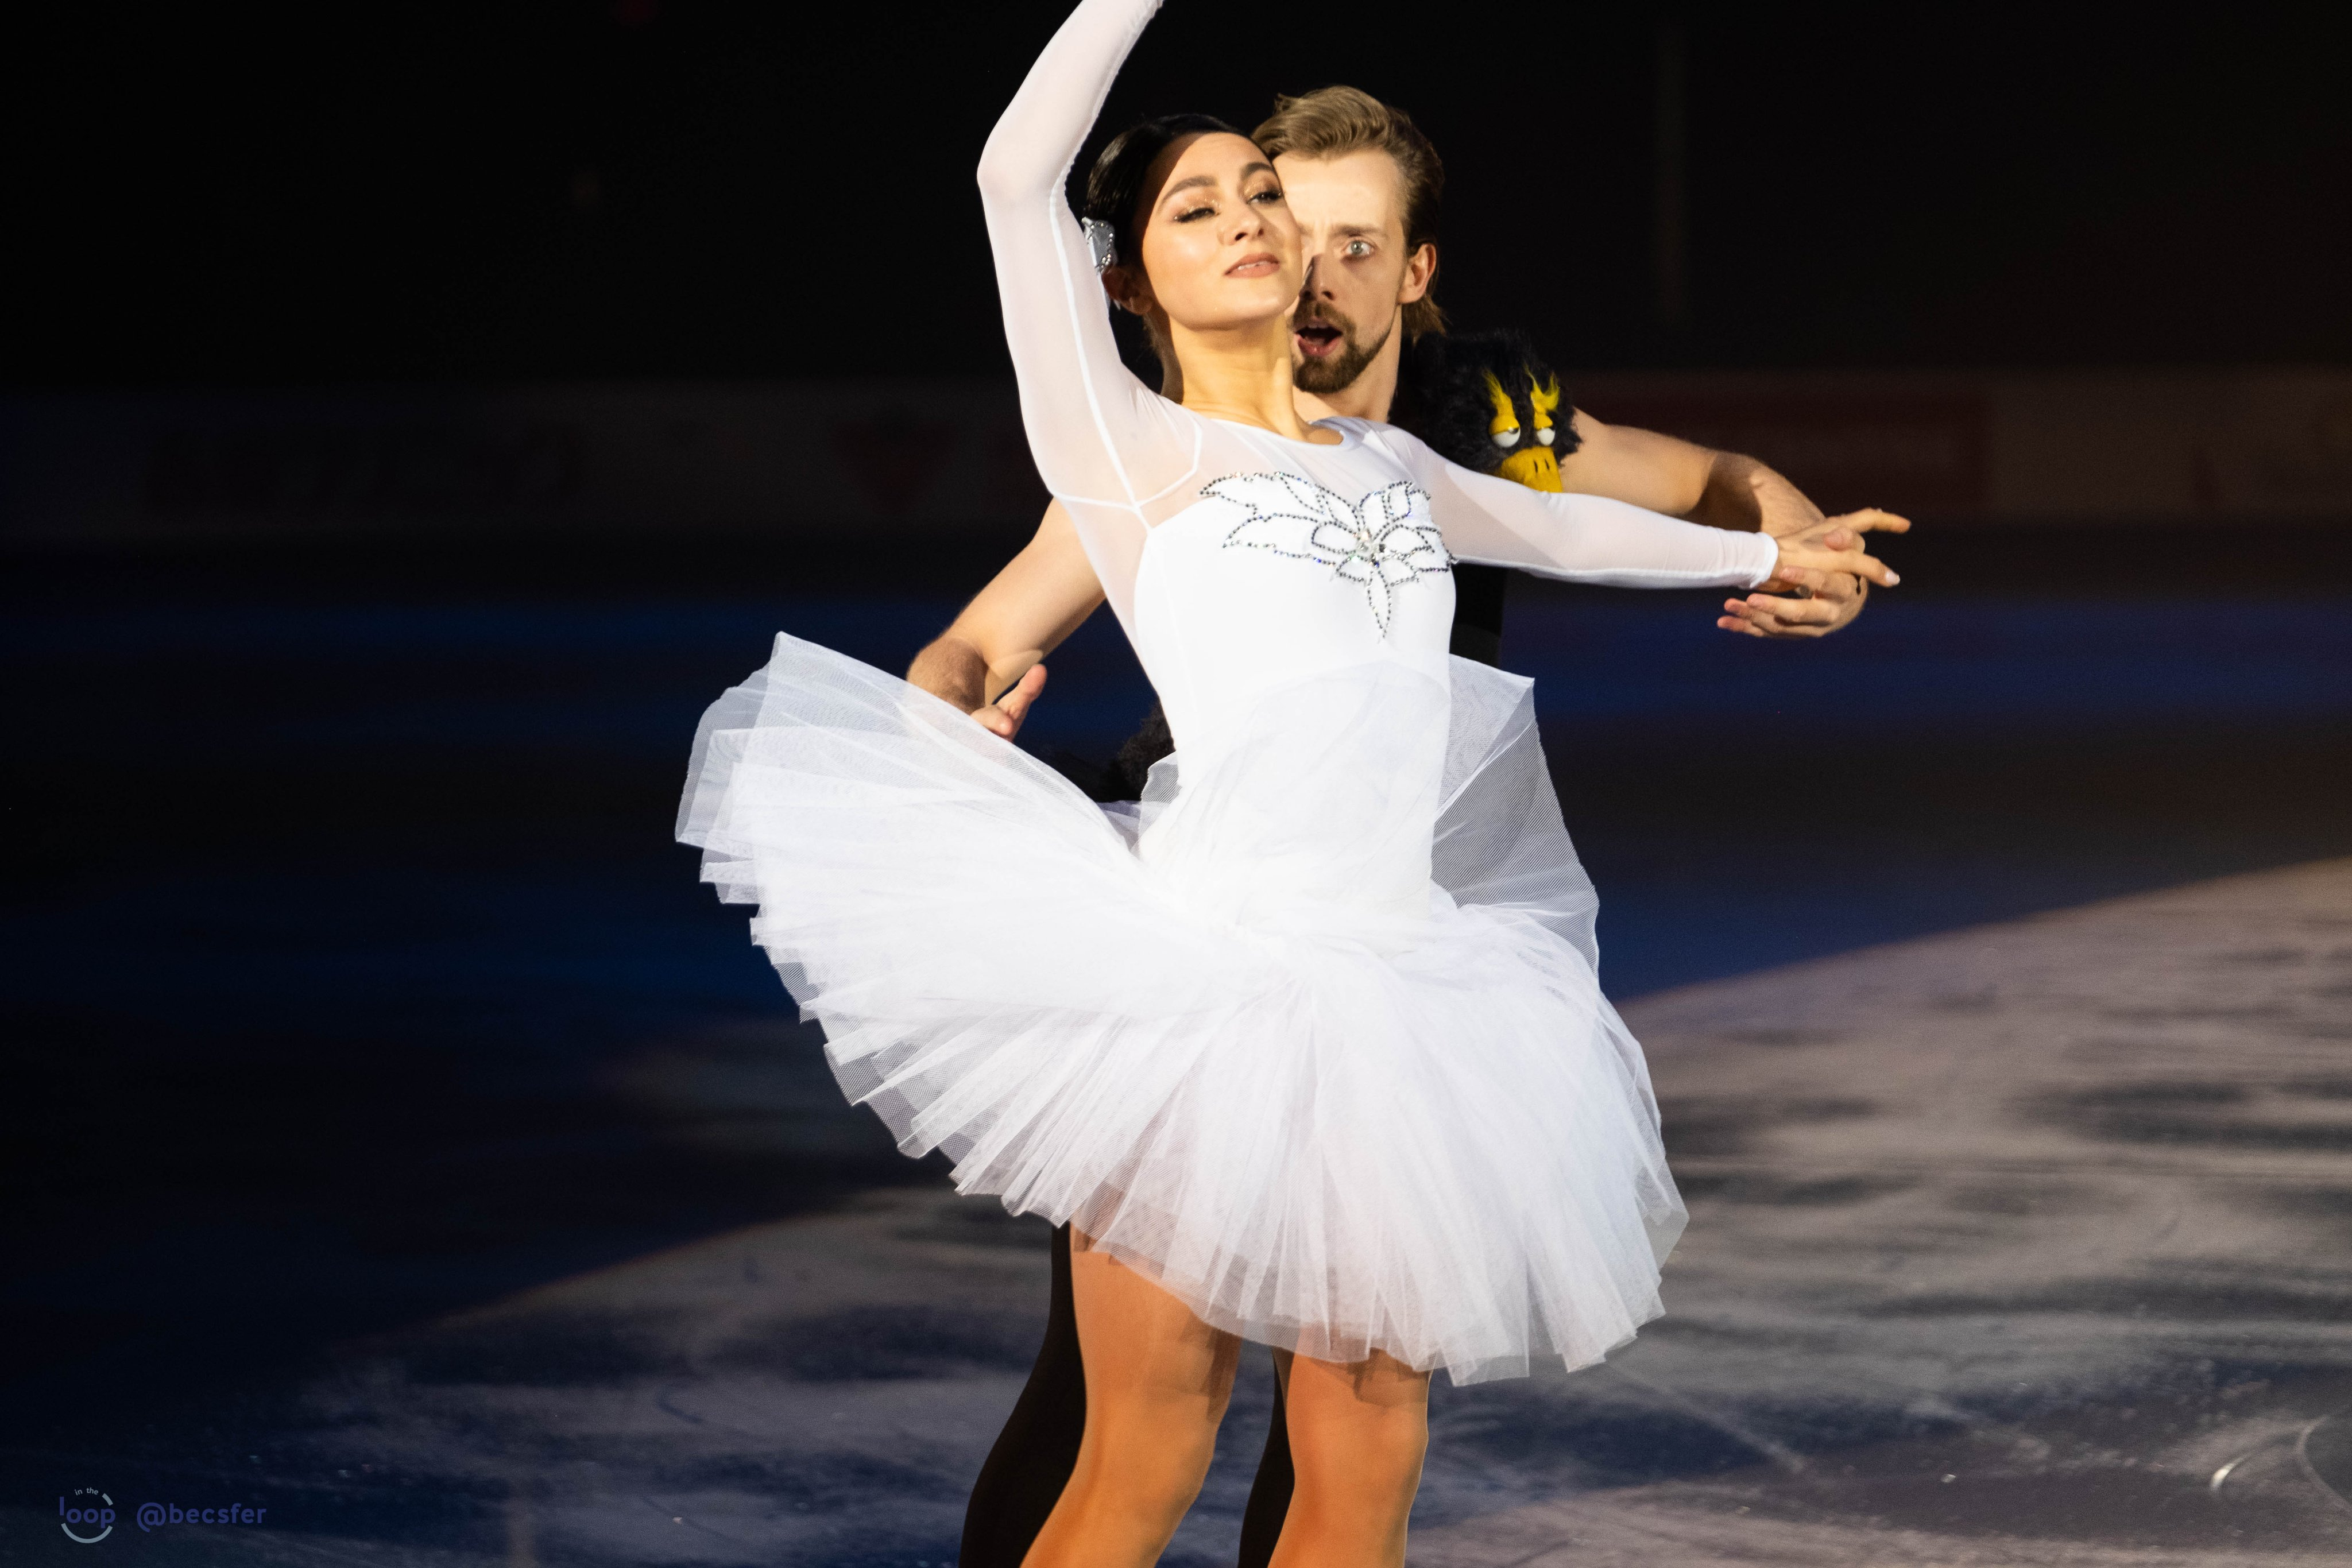 GP - 2 этап. Skate Canada International Kelowna, BC / CAN October 25-27, 2019 - Страница 28 EH77akgUwAAUnje?format=jpg&name=4096x4096